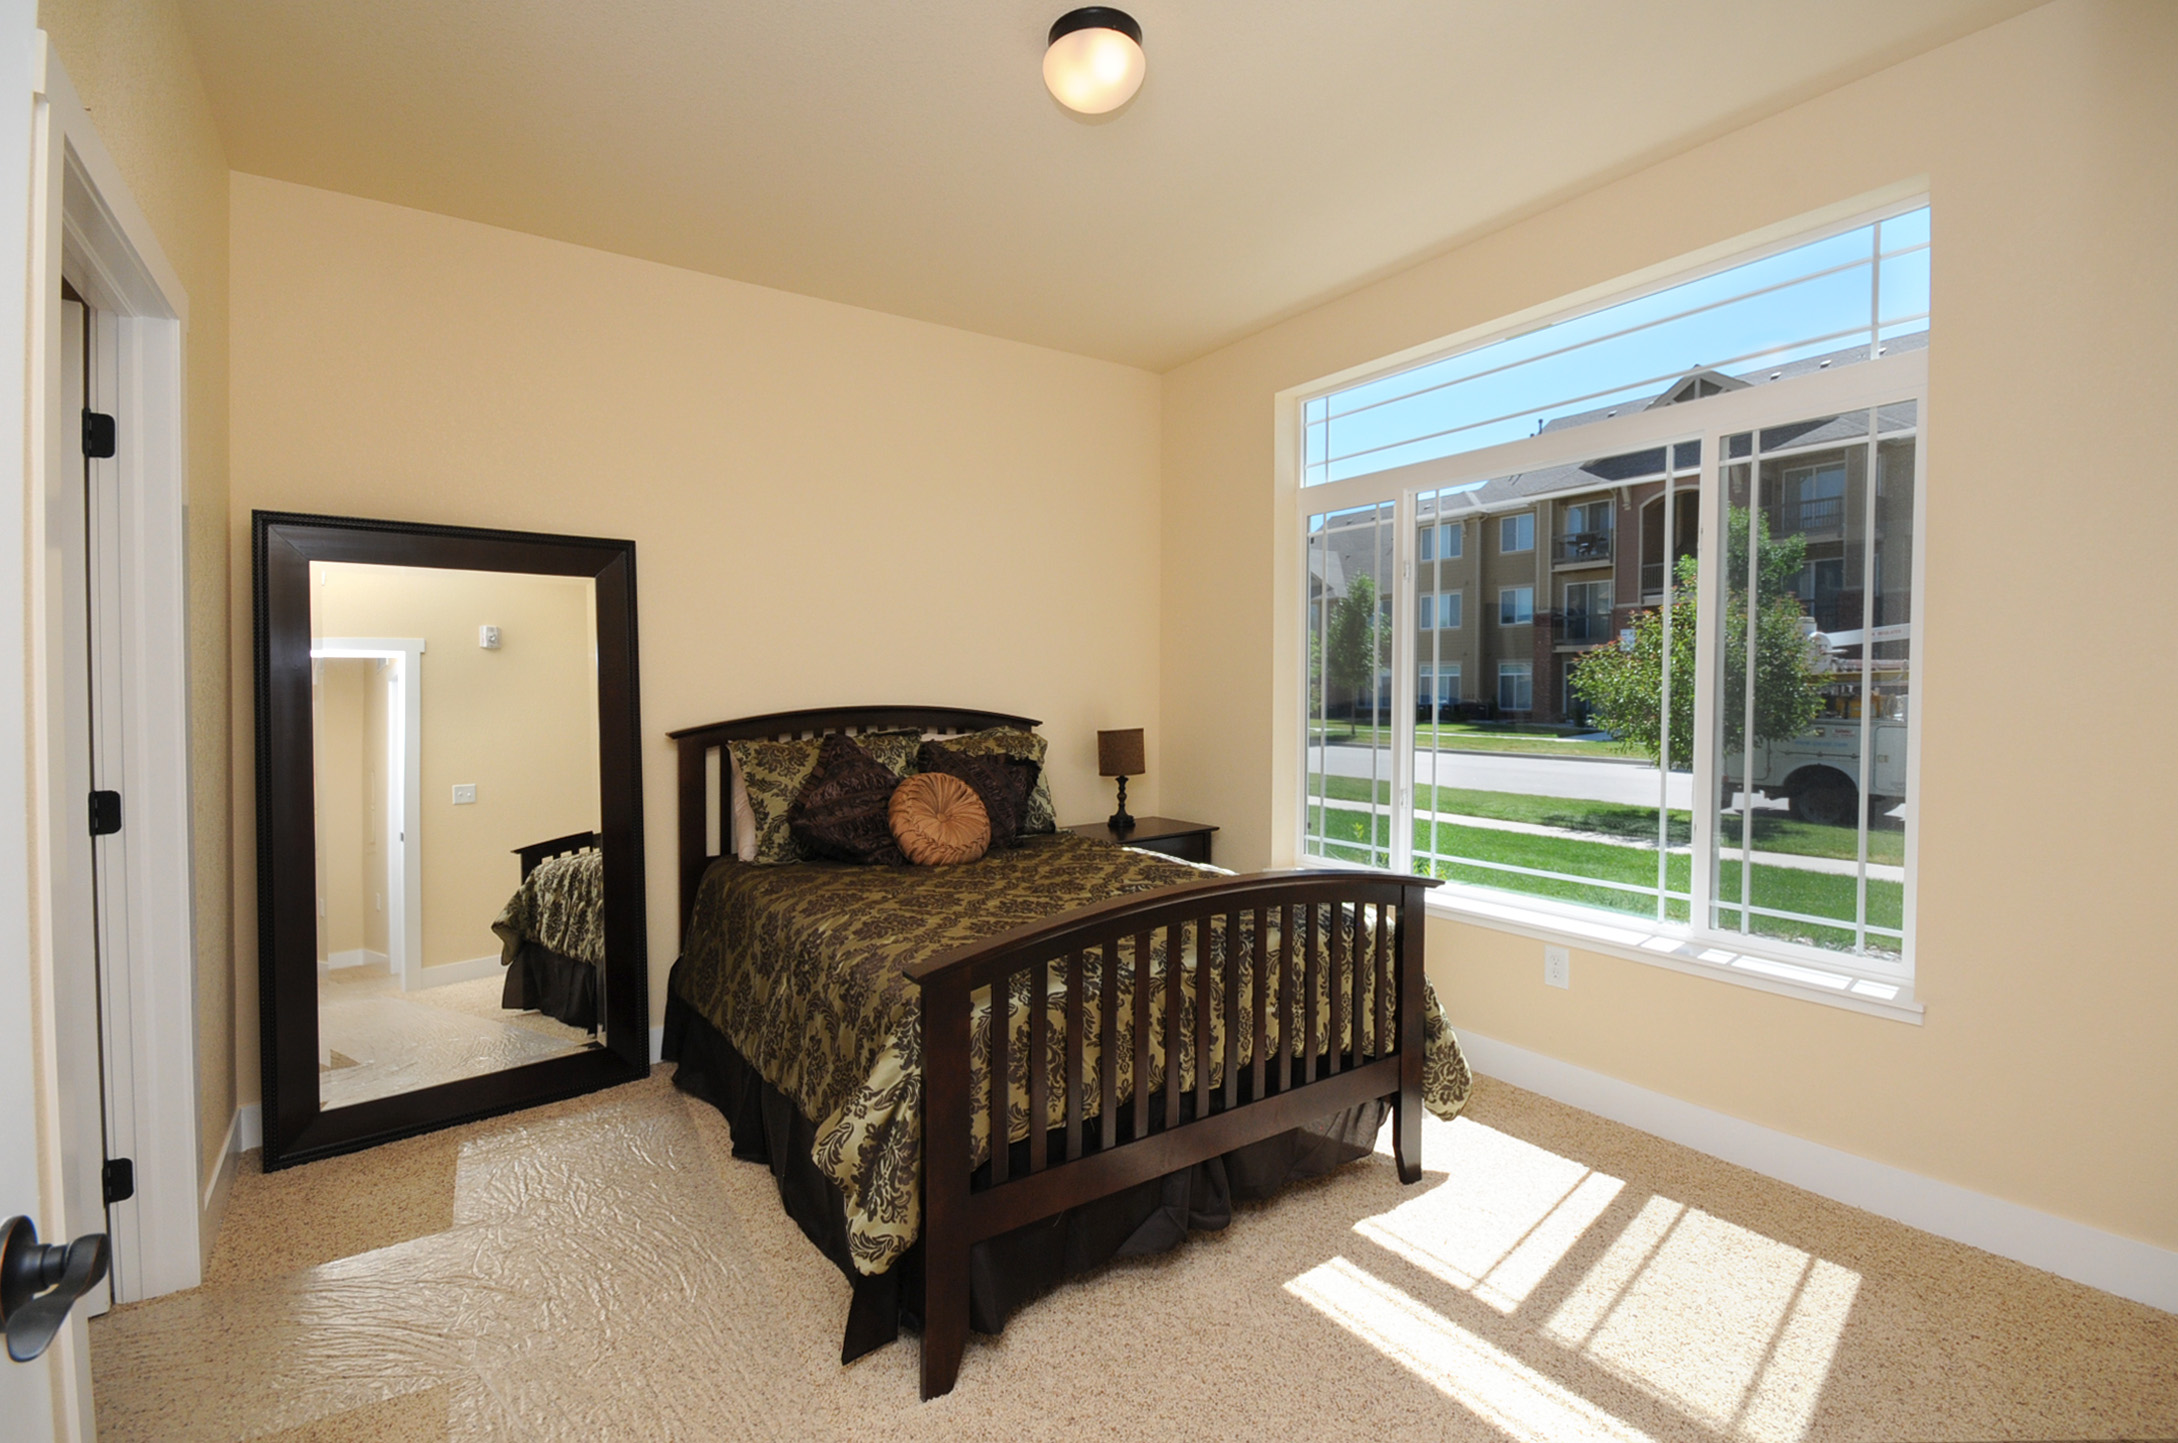 An airy master bedroom complements the entire condo